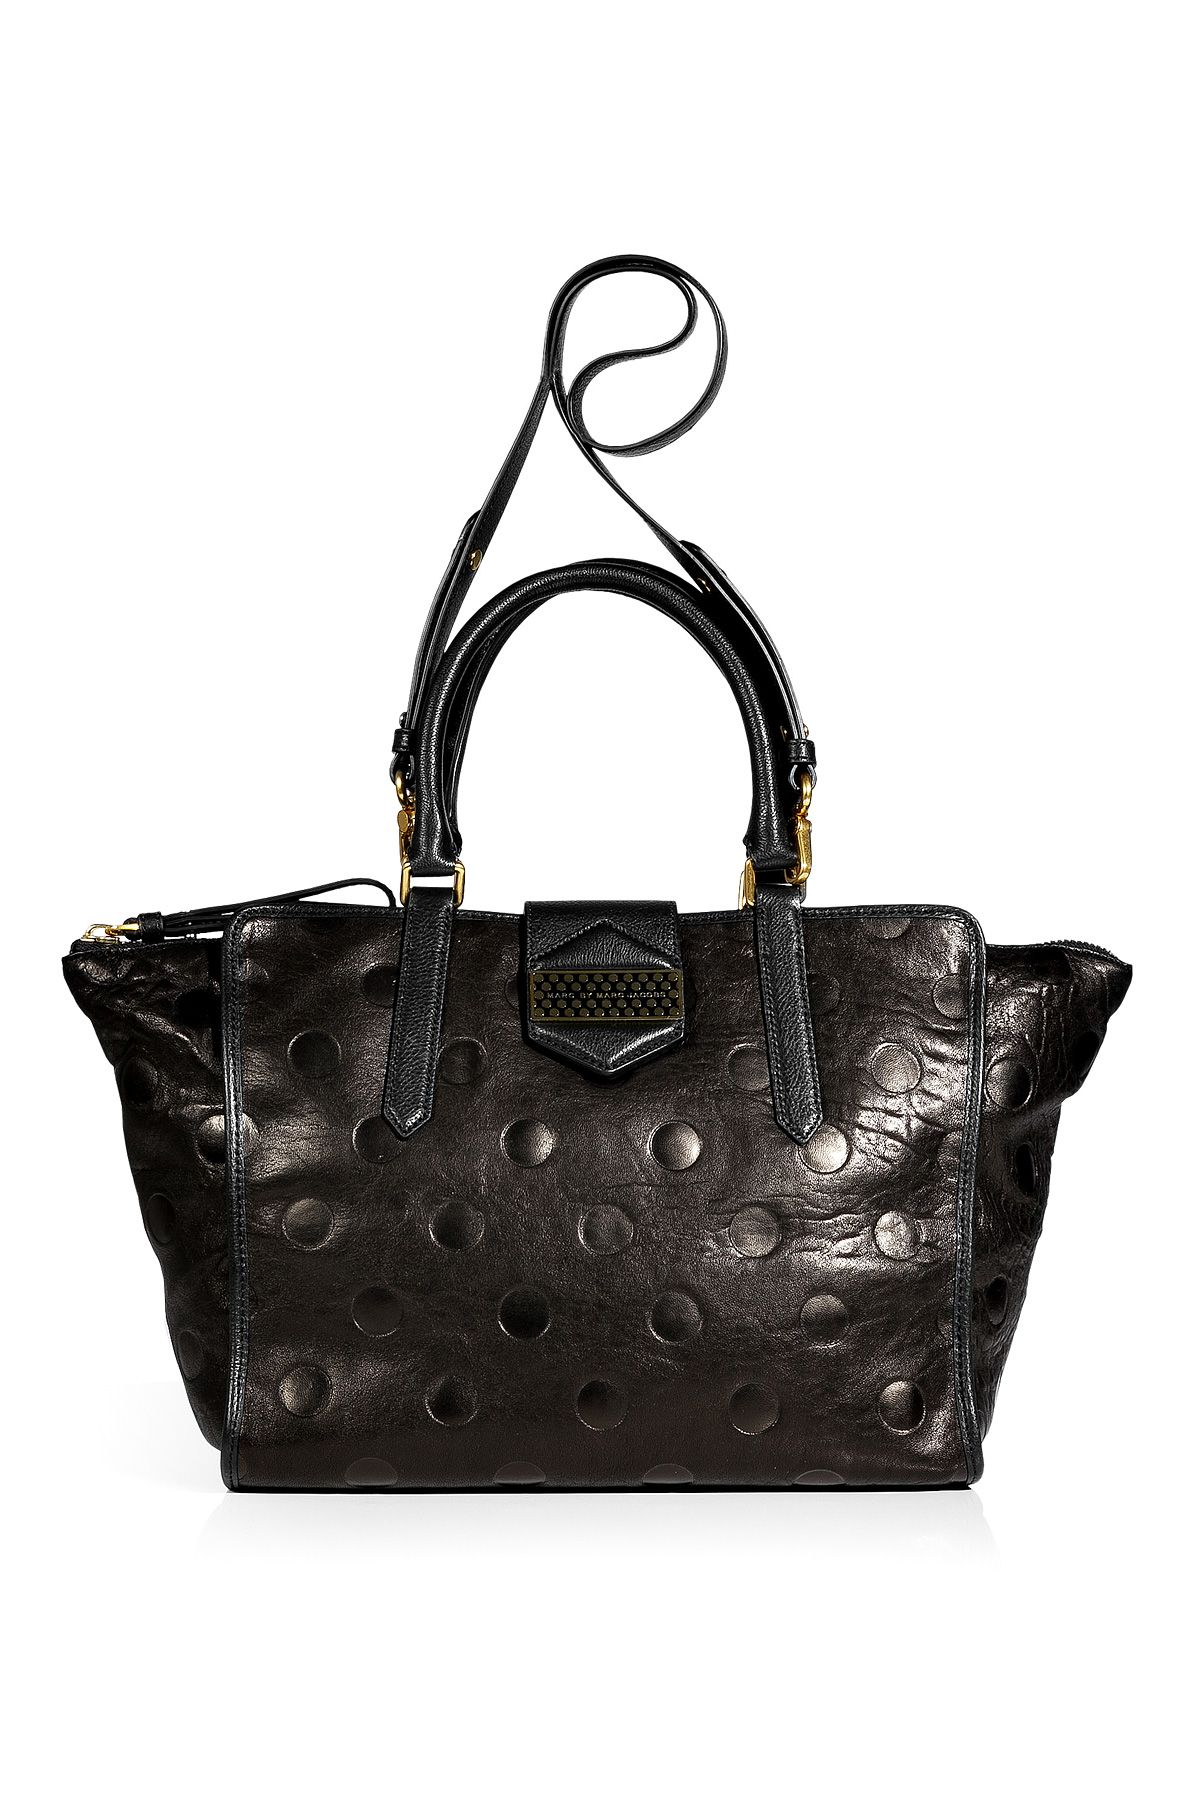 37280e110bae6 Black Dot Embossed Leather Tote by MARC BY MARC JACOBS | Bags ...